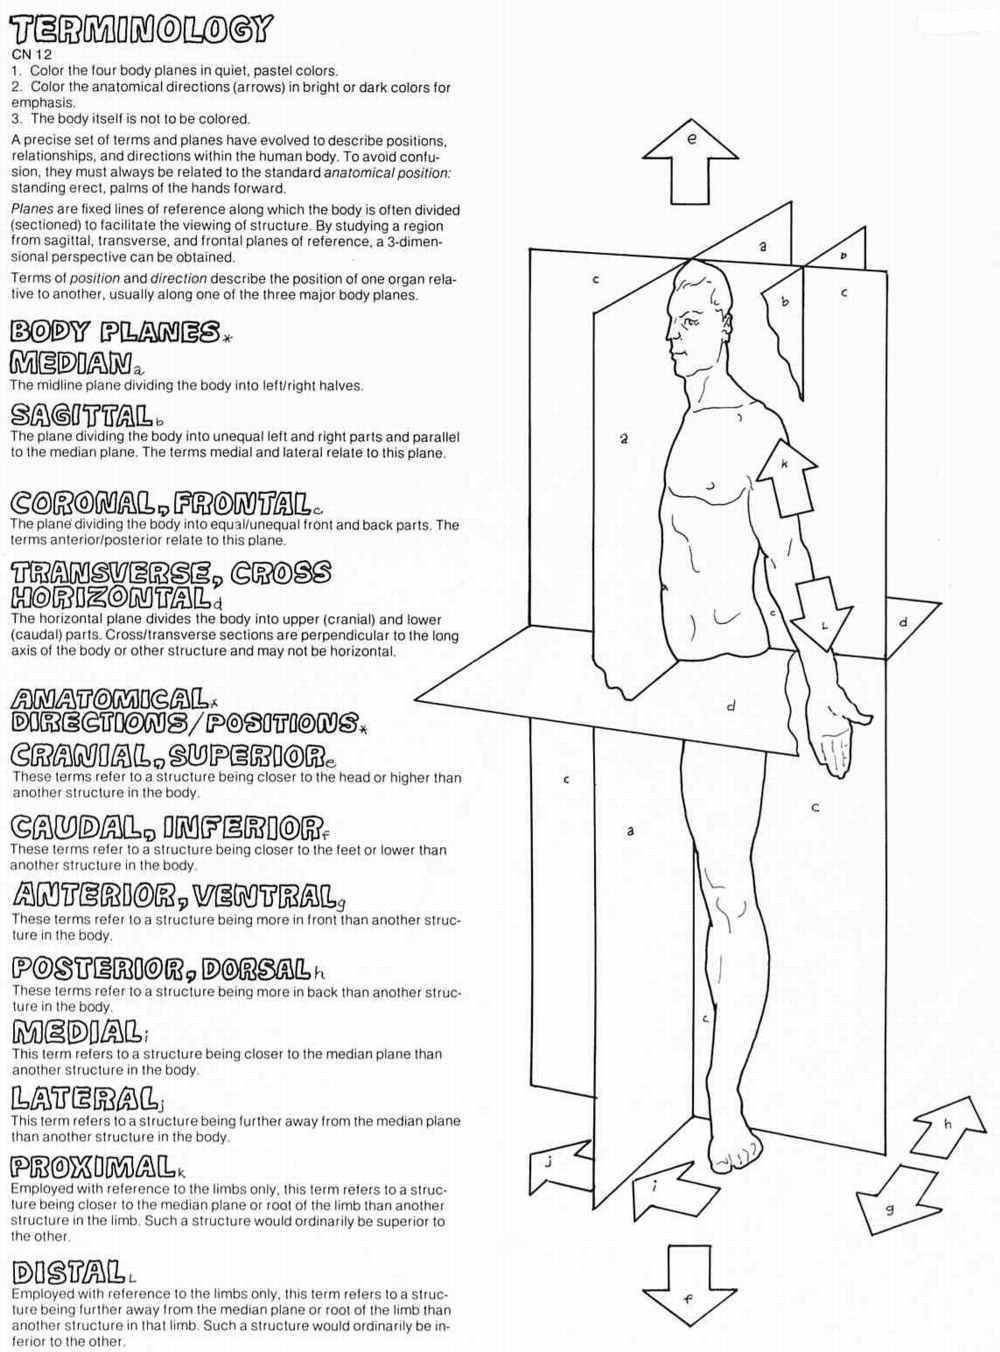 15 Best Images Of Human Anatomy Physiology Worksheets Manual Guide